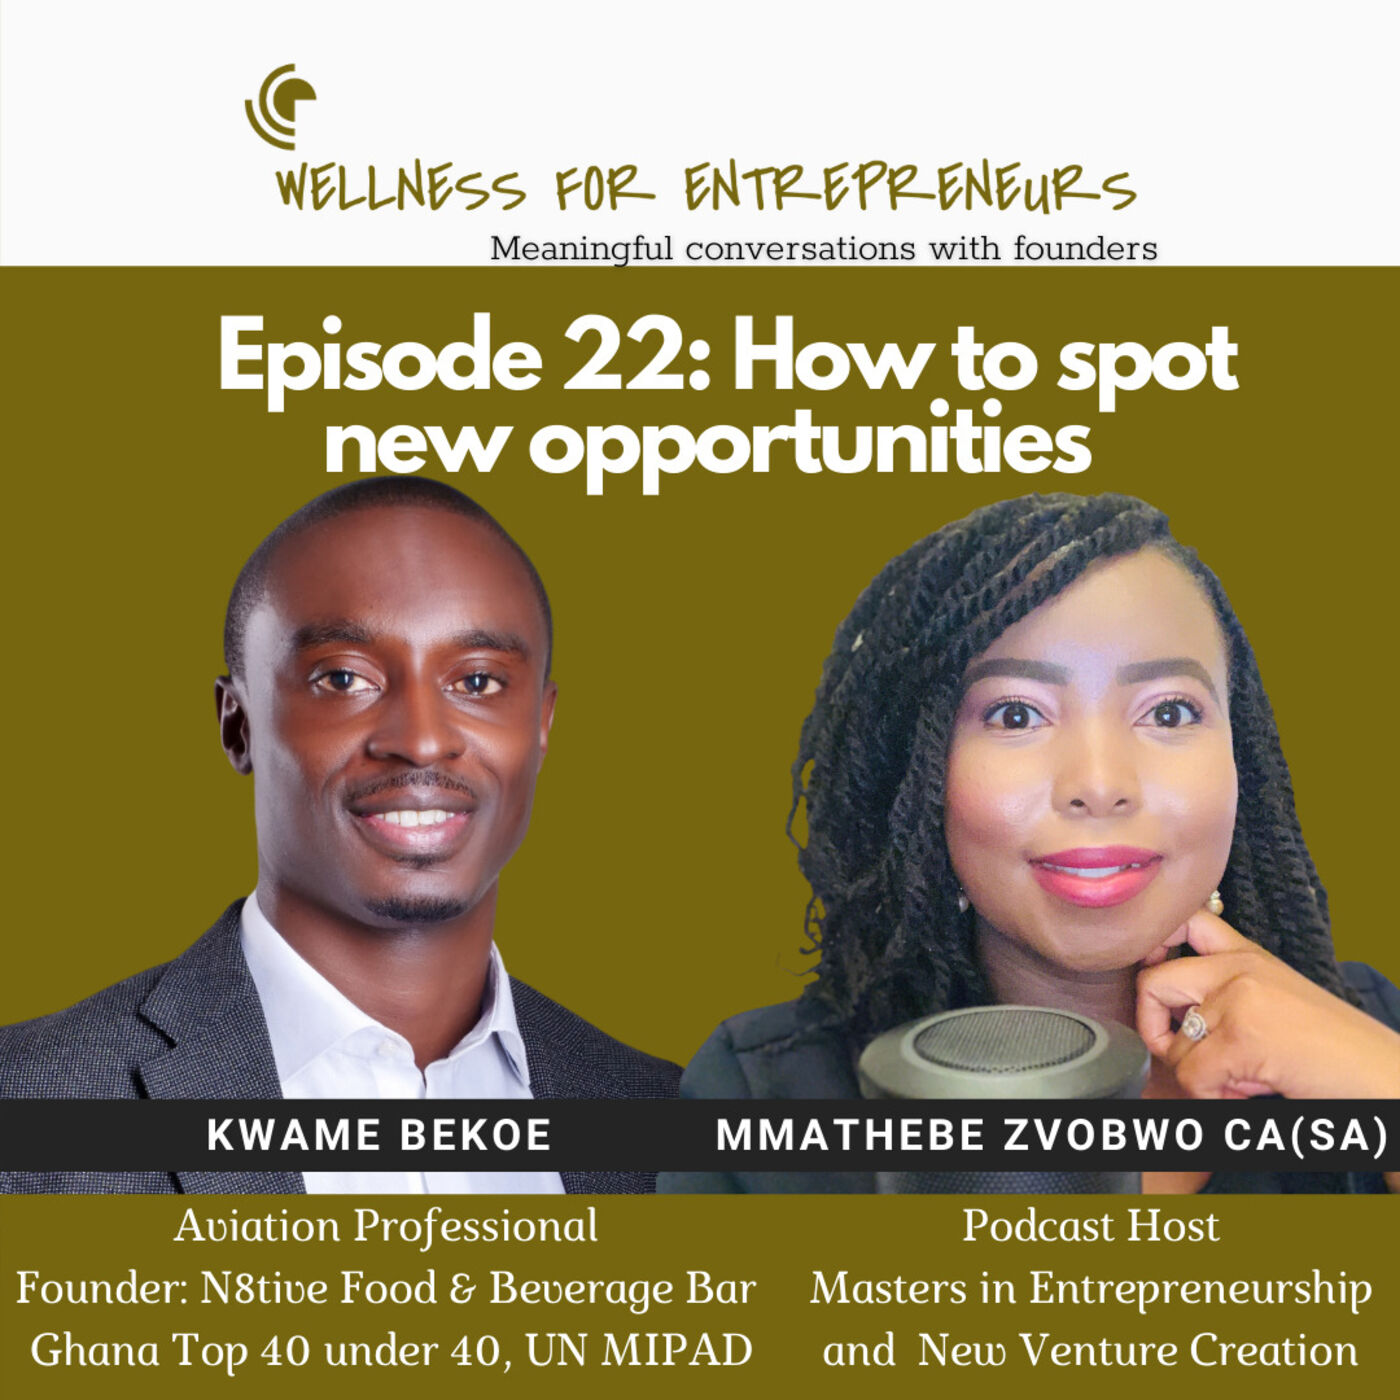 Episode 22: How to spot new opportunities, with Kwame Bekoe